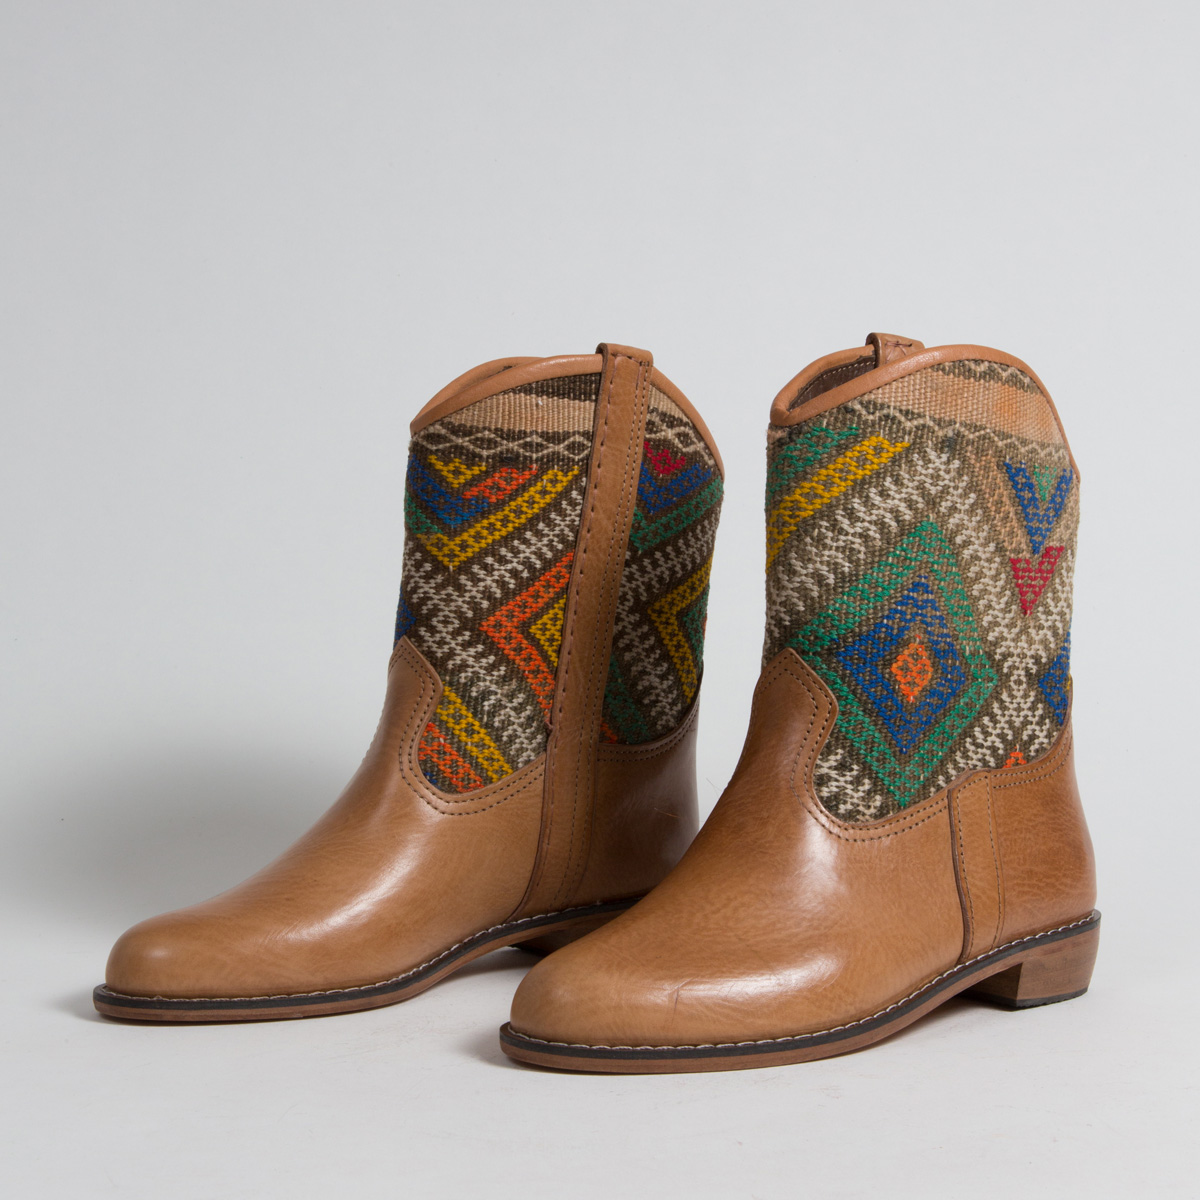 Bottines Kilim cuir mababouche artisanales (Réf. P8-40)